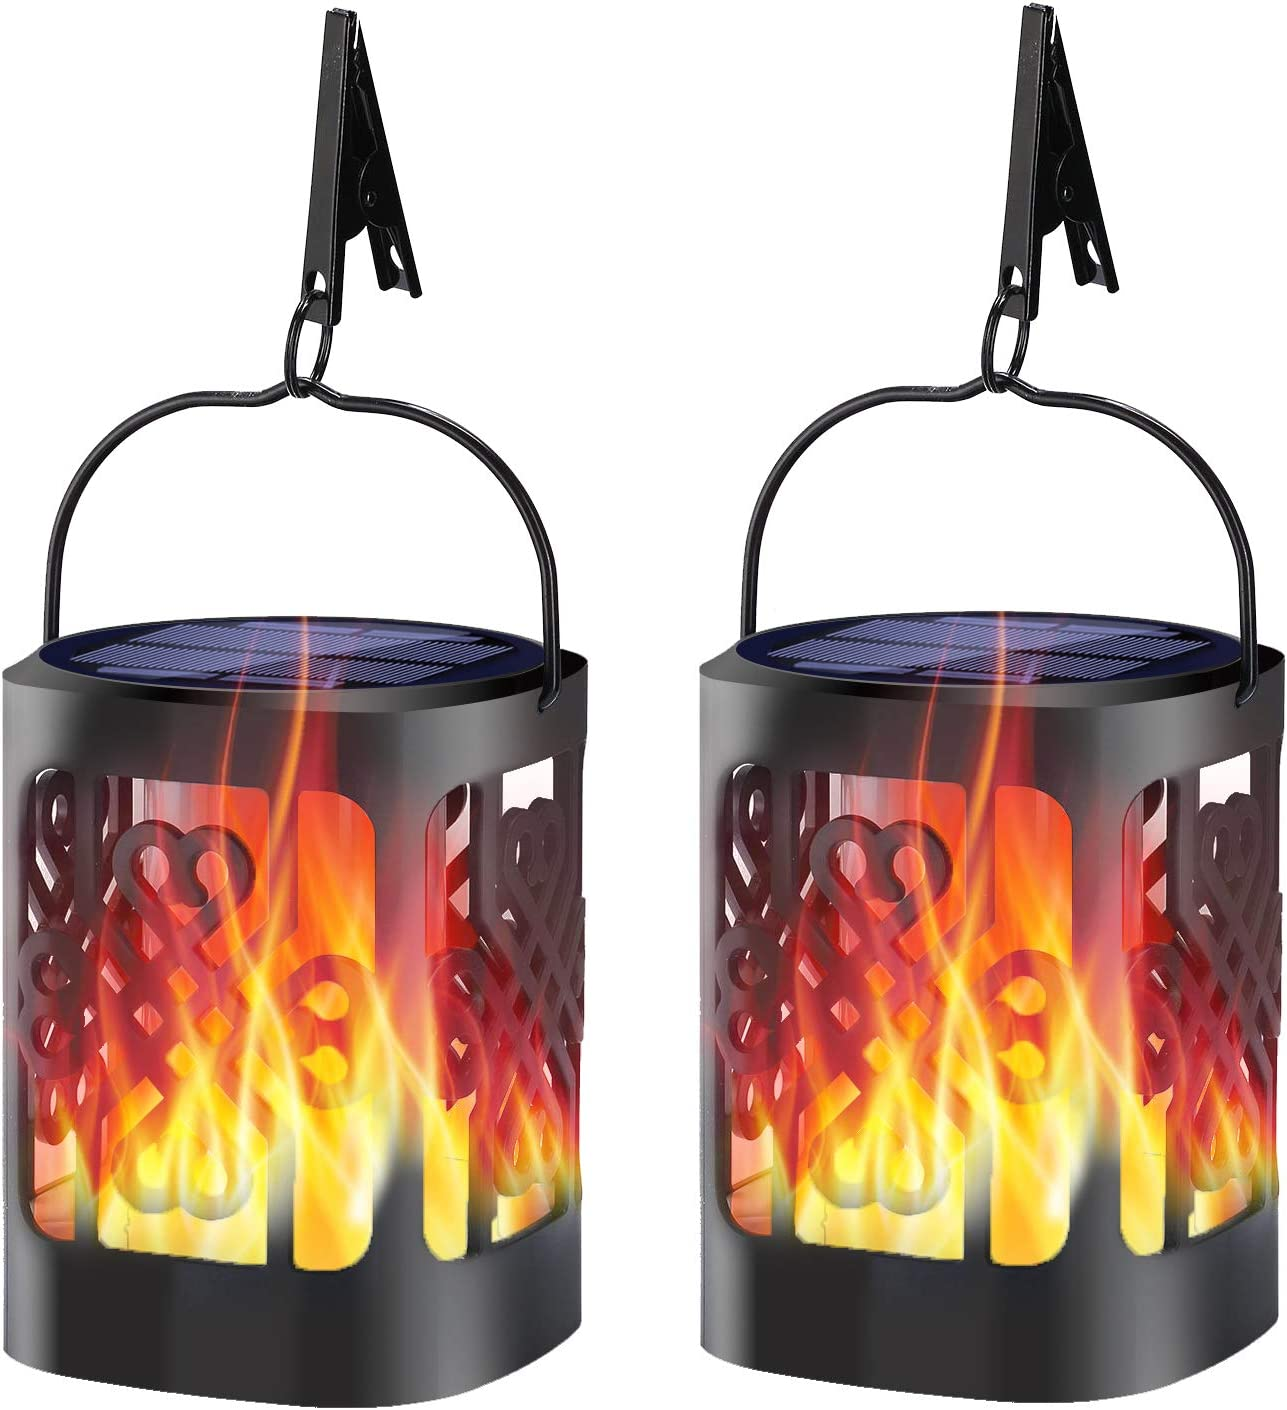 YoungPower Solar Lantern Lights Dancing Flame Waterproof Outdoor Hanging Lanterns Solar Powered Umbrella LED Night Light Dusk to Dawn Auto On/Off Landscape Decorative for Garden Patio Yard, 2 Pack